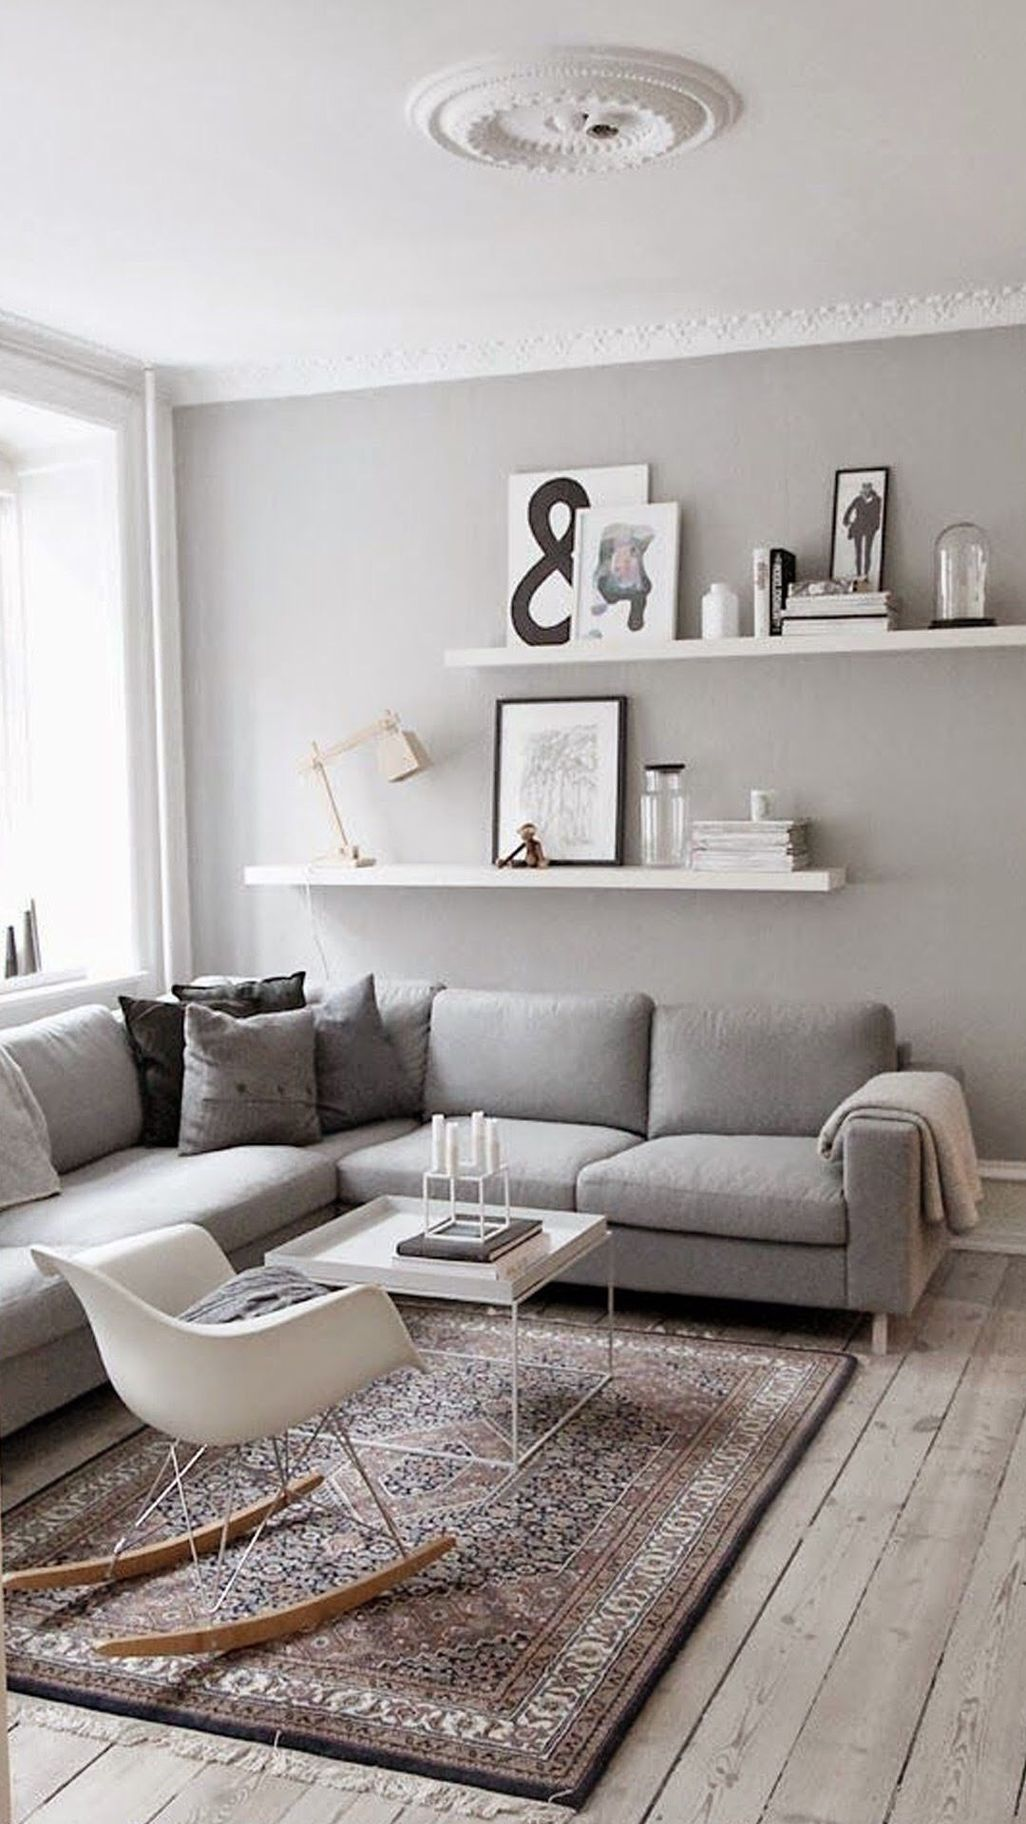 Design A Living Room Online Free: 45 Stylish Gray Sofa Living Room Décor Ideas